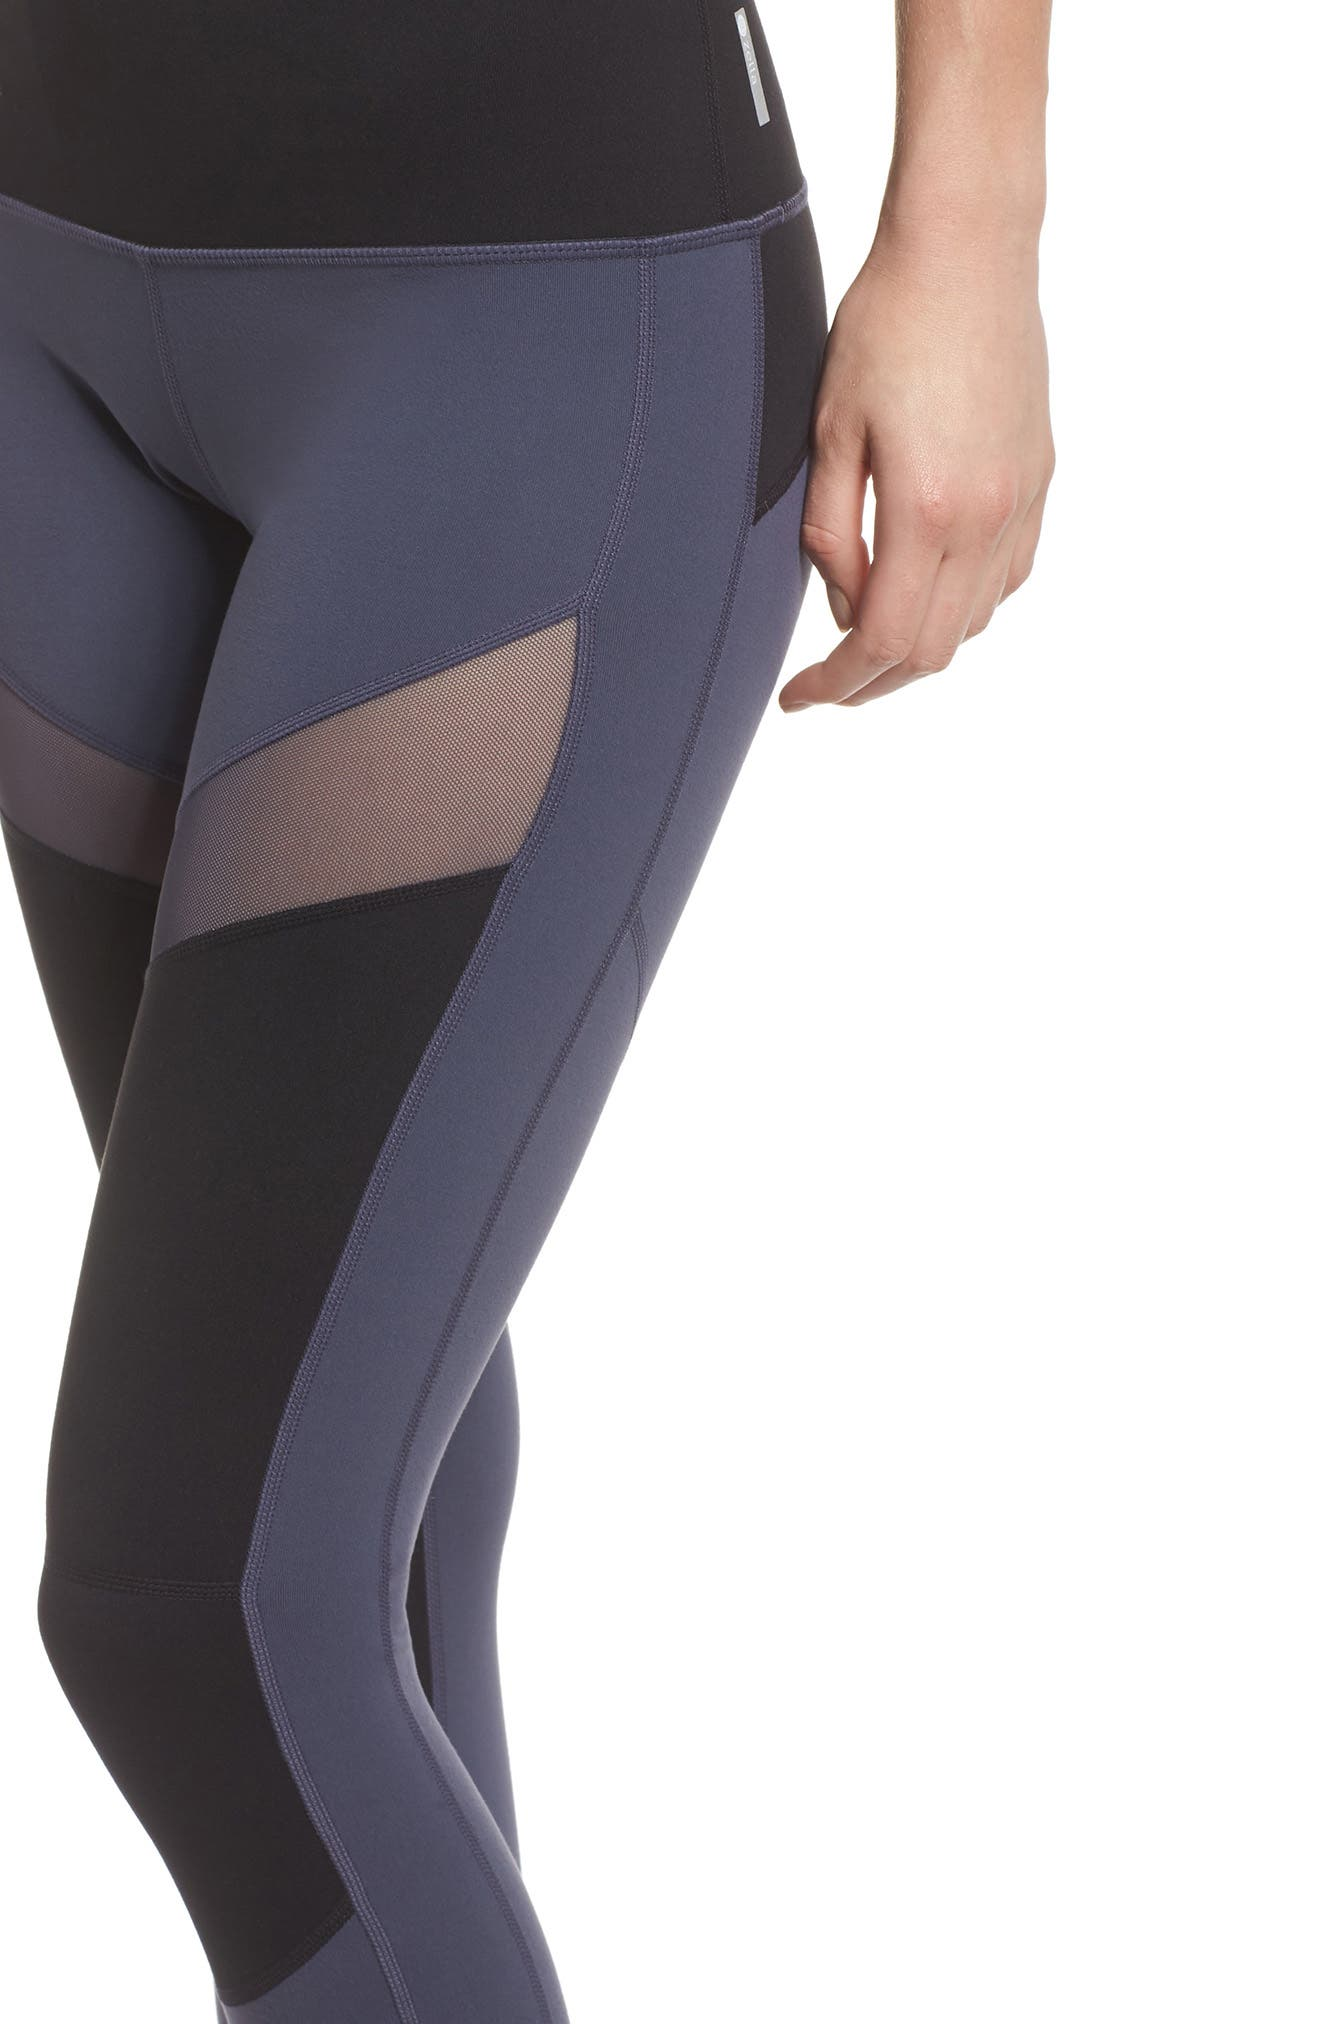 Autumn Block Ankle Leggings,                             Alternate thumbnail 4, color,                             Grey Slate